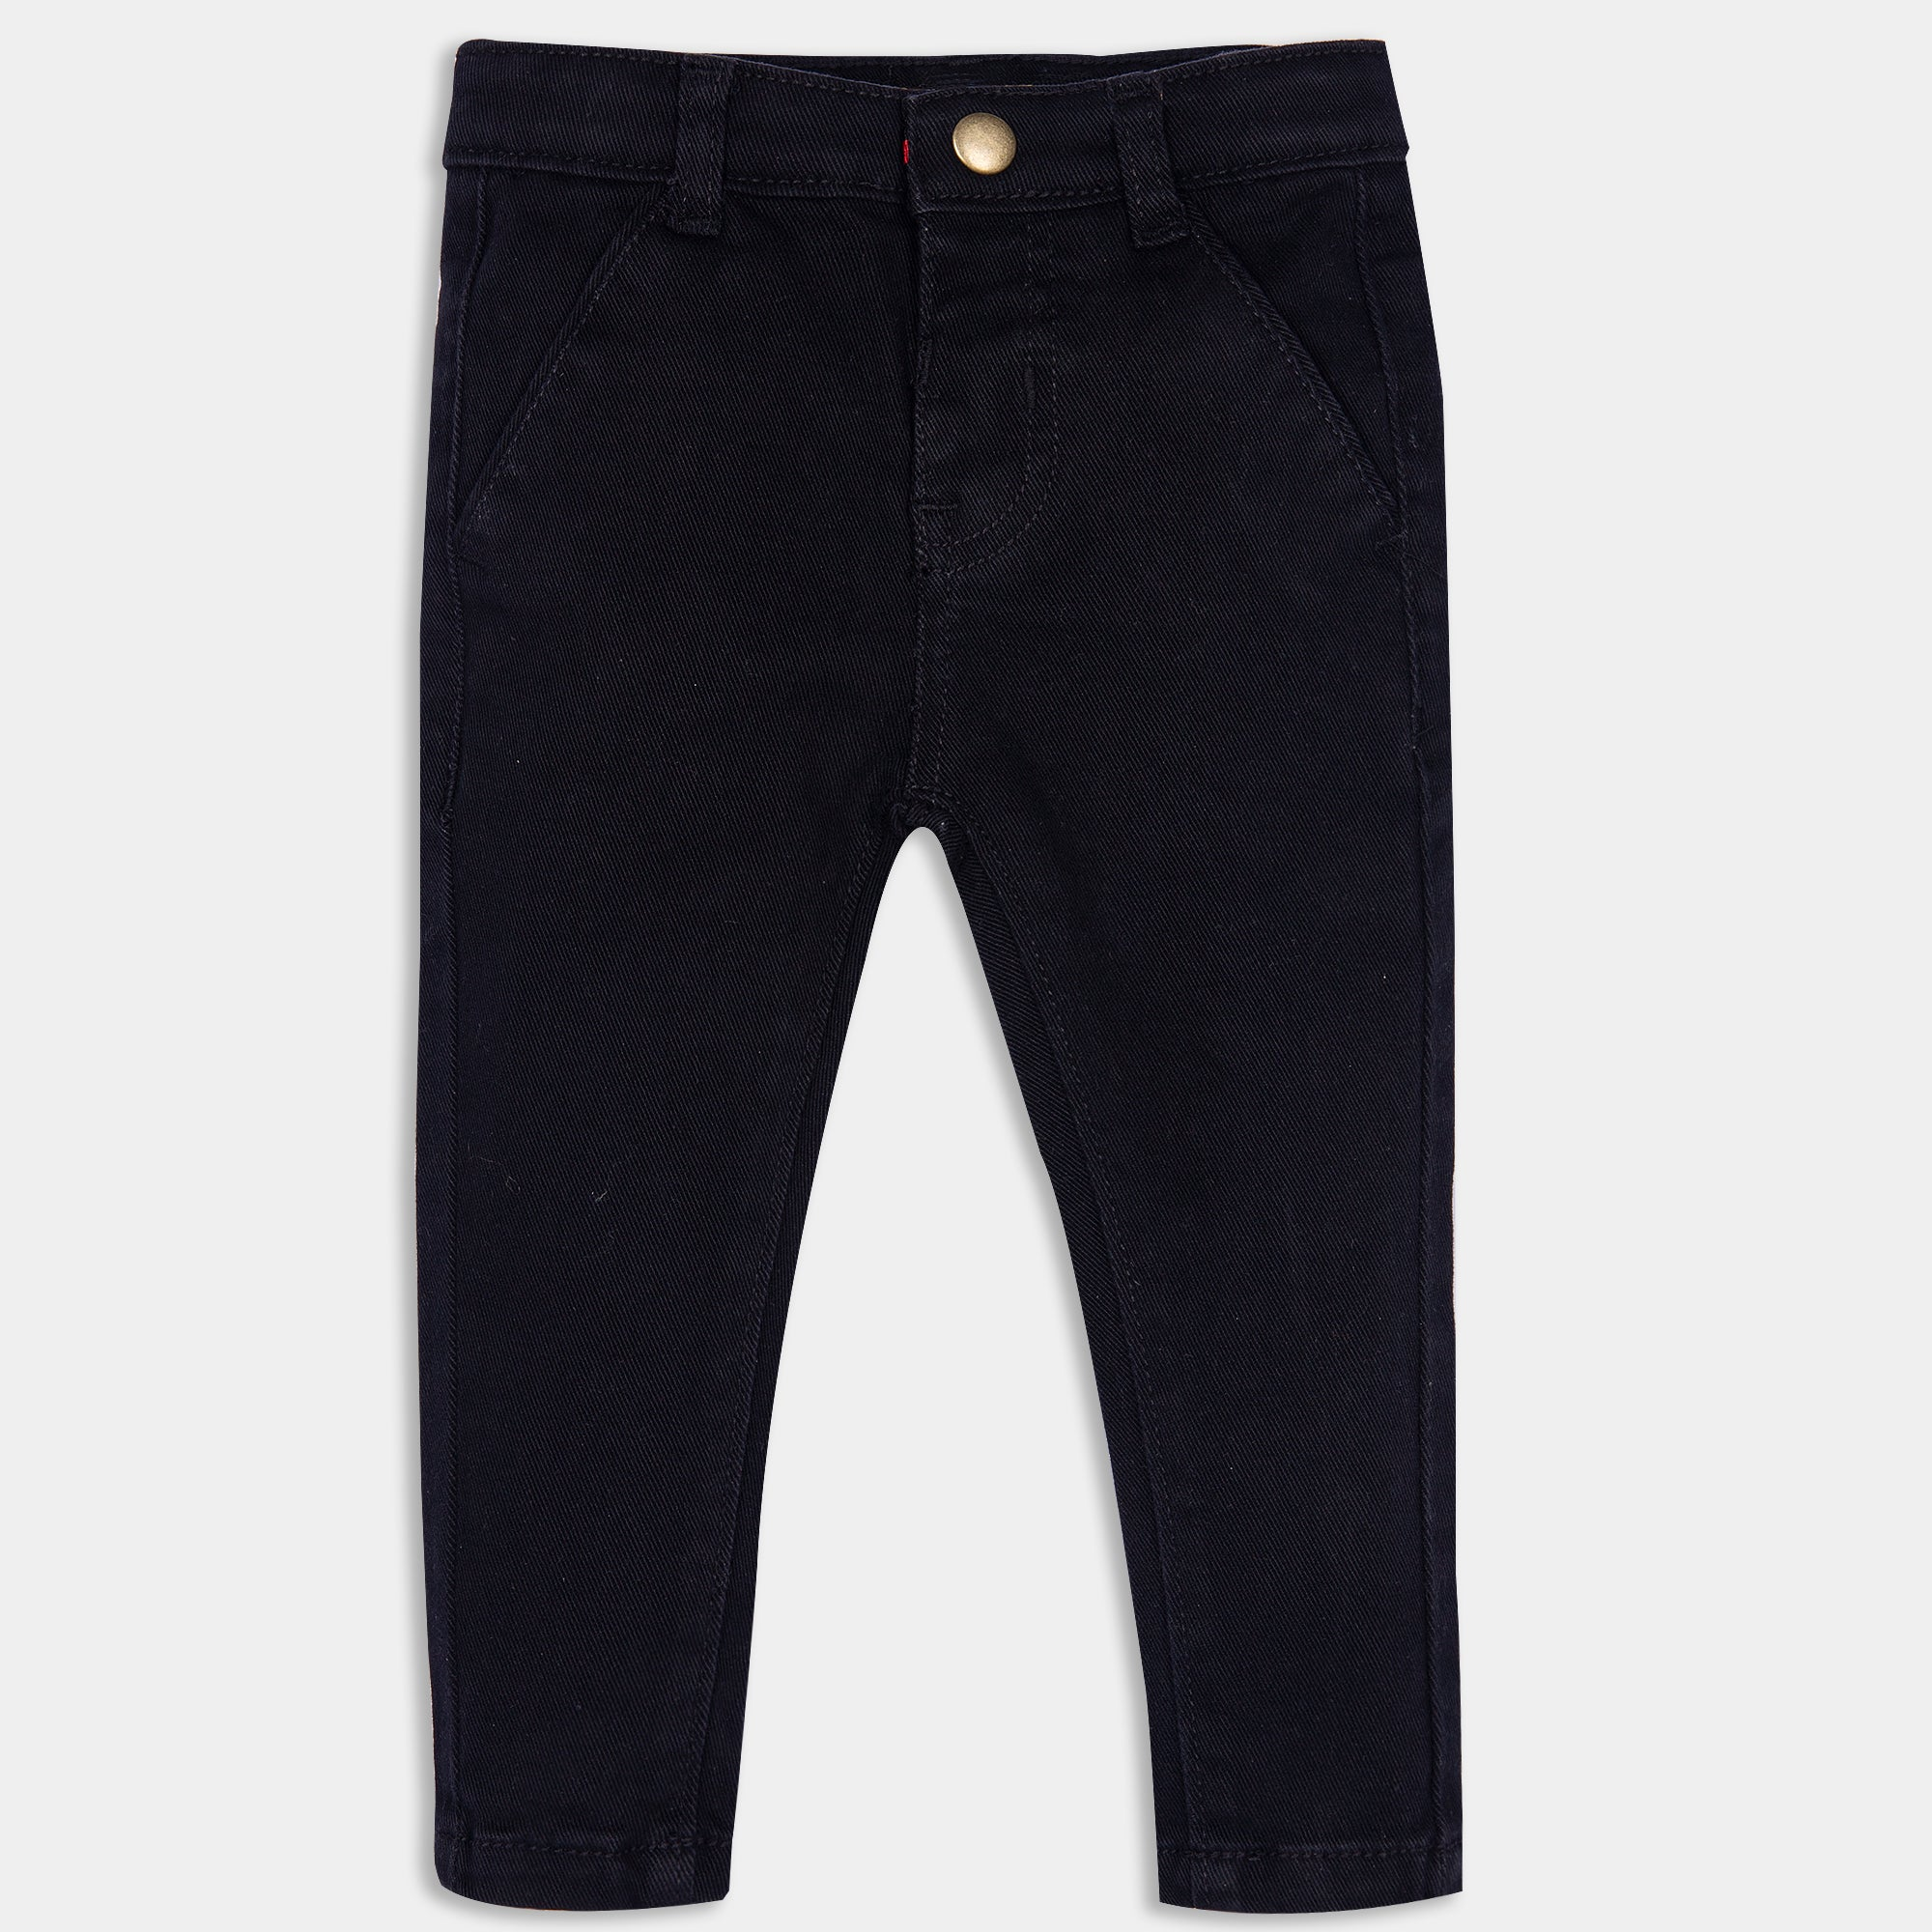 Basic Black Chino Pants